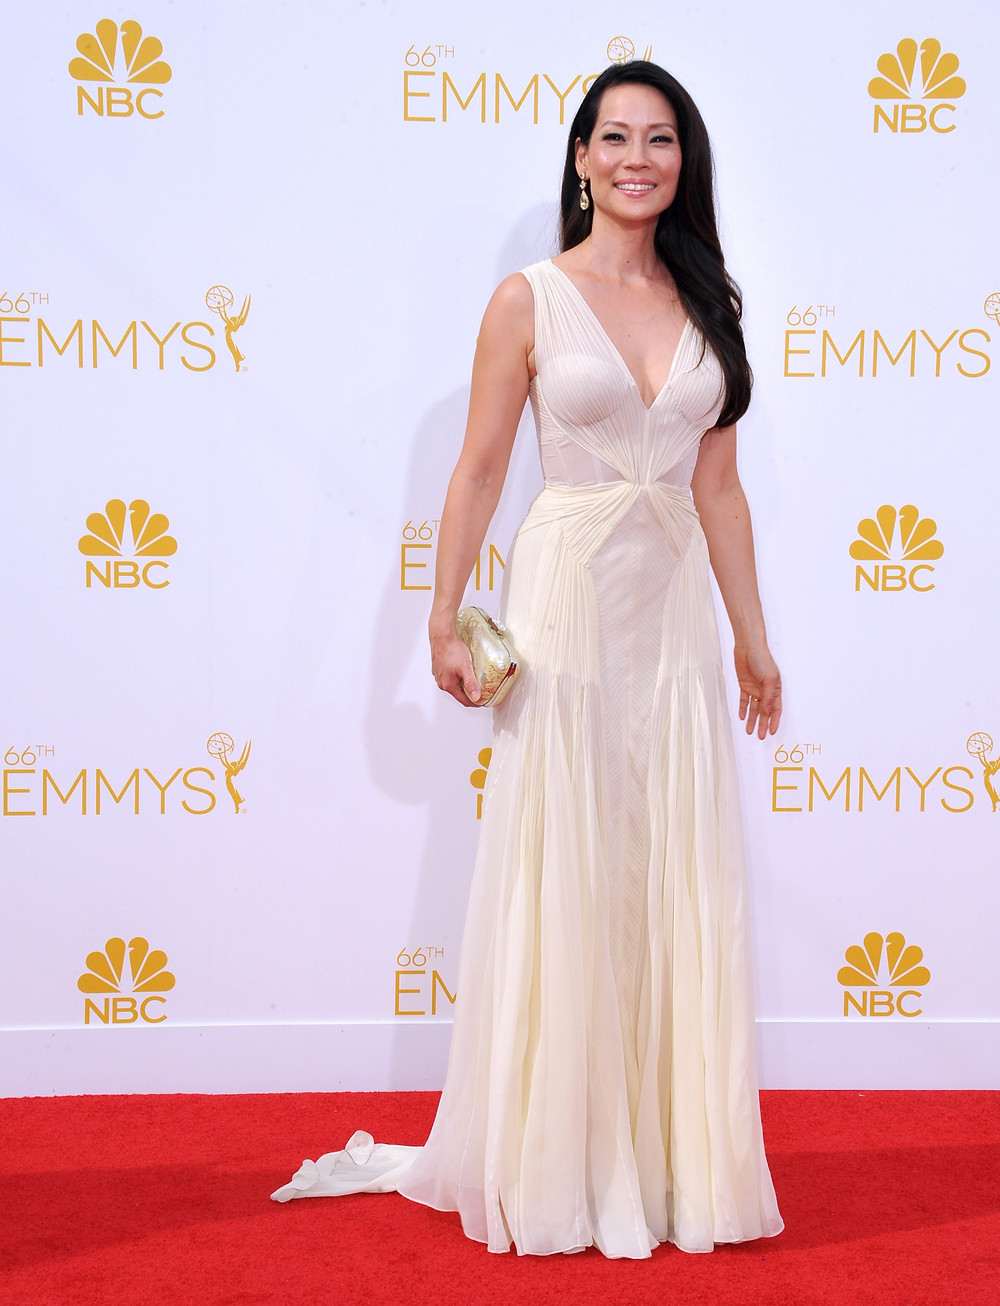 LOS ANGELES, CA - AUGUST 25, 2014: Lucy Liu at the 66th Primetime Emmy Awards at the Nokia Theatre L.A. Live downtown Los Angeles.